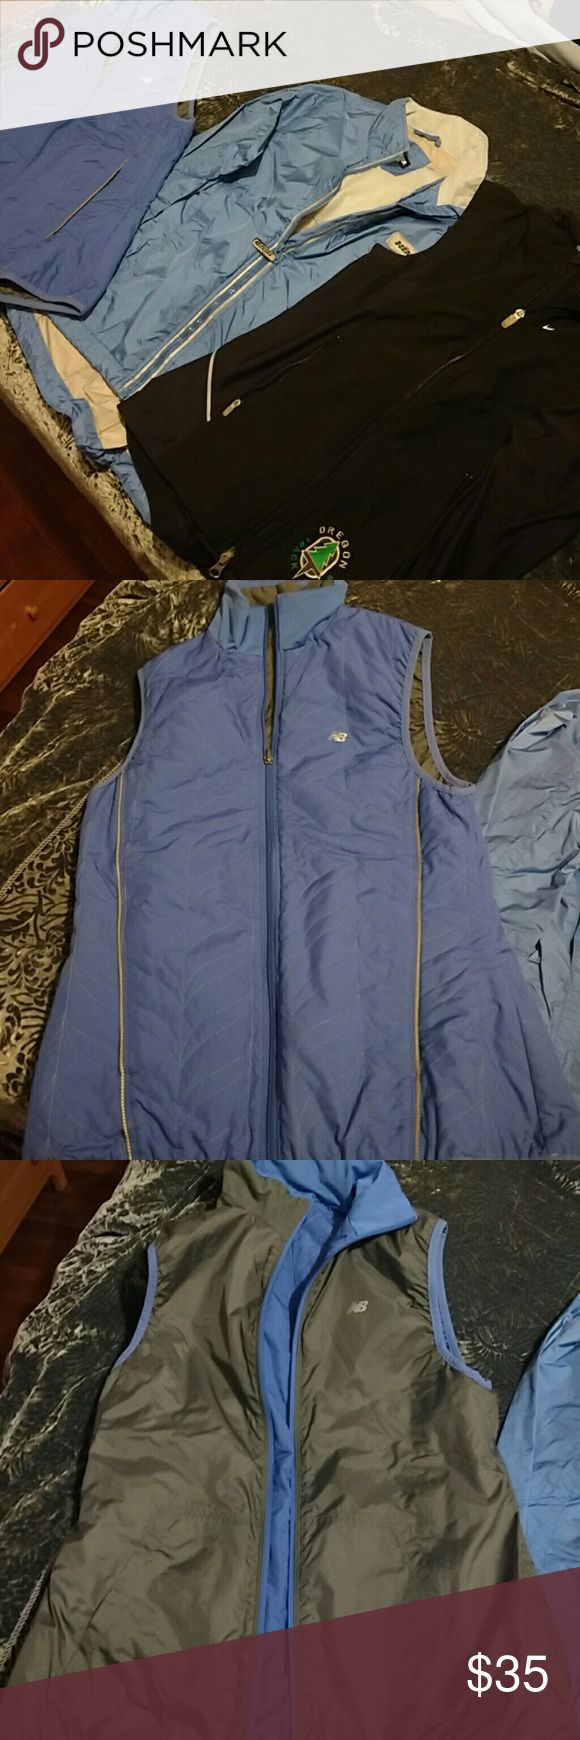 Lot of women's running jacket & 2 vests, Nike etc Both vests are in excellent condition and the jacket is in good used condition.  They are all size women's small.  Zippers work well. Clean, non-smoking home.  The jacket is waterproof and was around $150 new. Both vests are water resistant and the New Balance one is reversible.  Gear up now to stay in shape this winter!! Nike Jackets & Coats